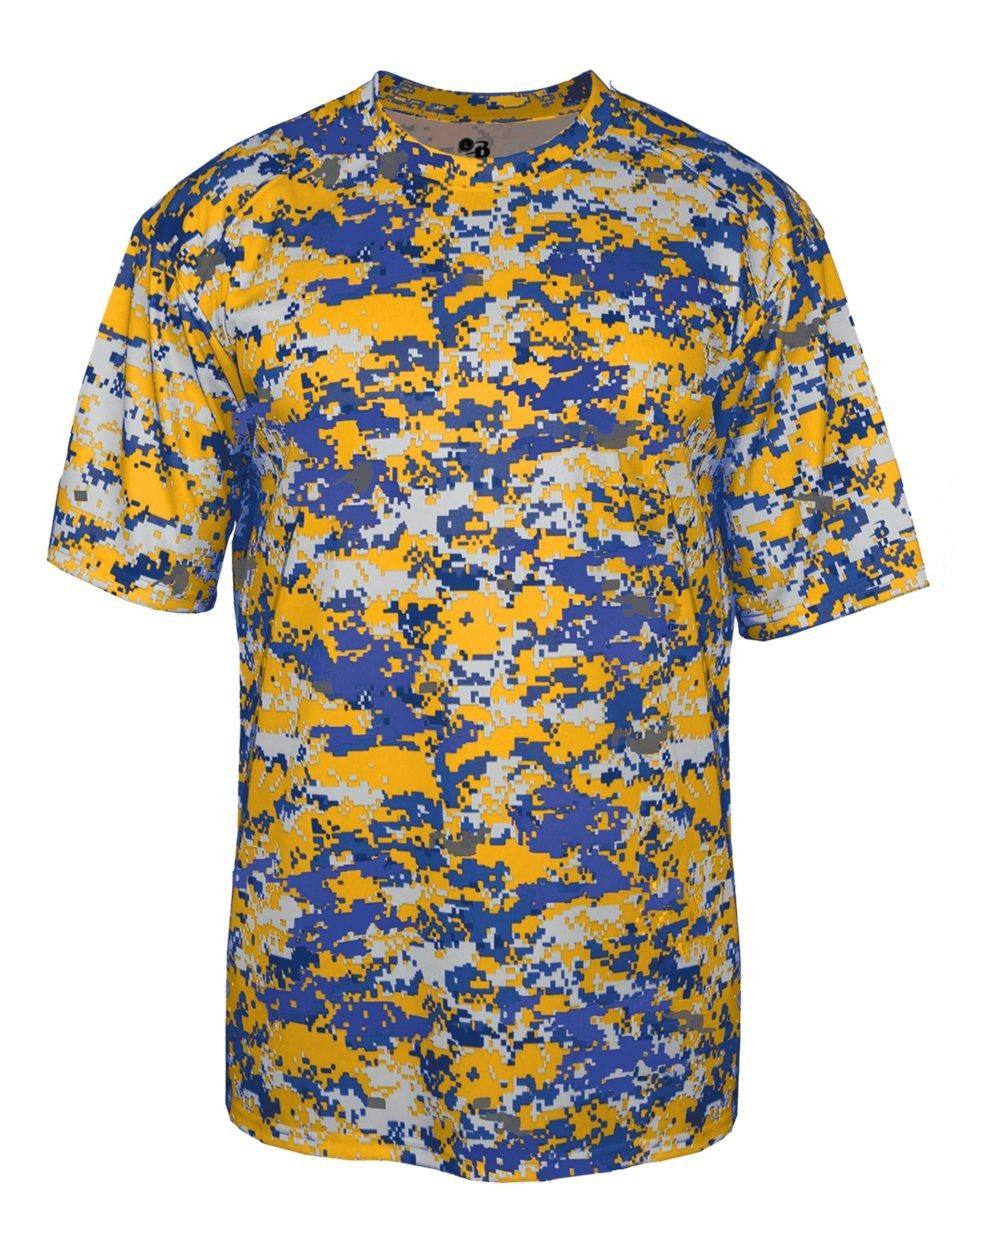 c9d3a6a9592 Youth Digital Camo Performance B-Core Tee by Badger Sports Style ...